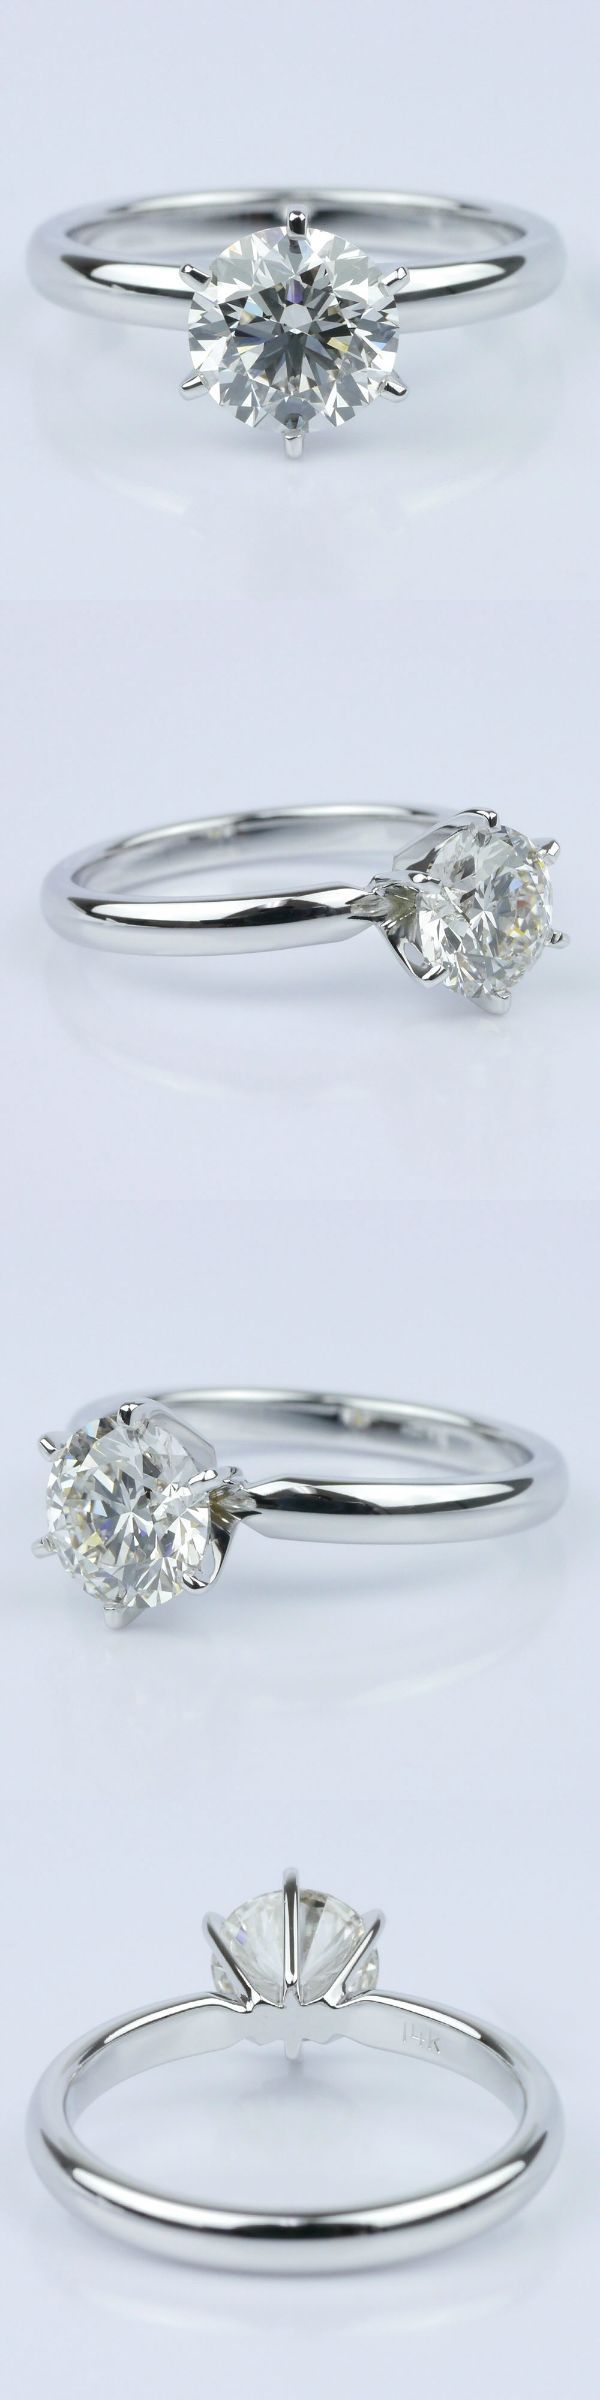 Six-Prong Solitaire Engagement Ring! Round 1.75 Ctw. Color: J Clarity: VS2 Cut: Super Ideal Certification: GIA Diamond/Gem Cost: $5,588 Metal: 14K White Gold Setting Cost: $395 Total Cost: $5,983 www.brilliance.com